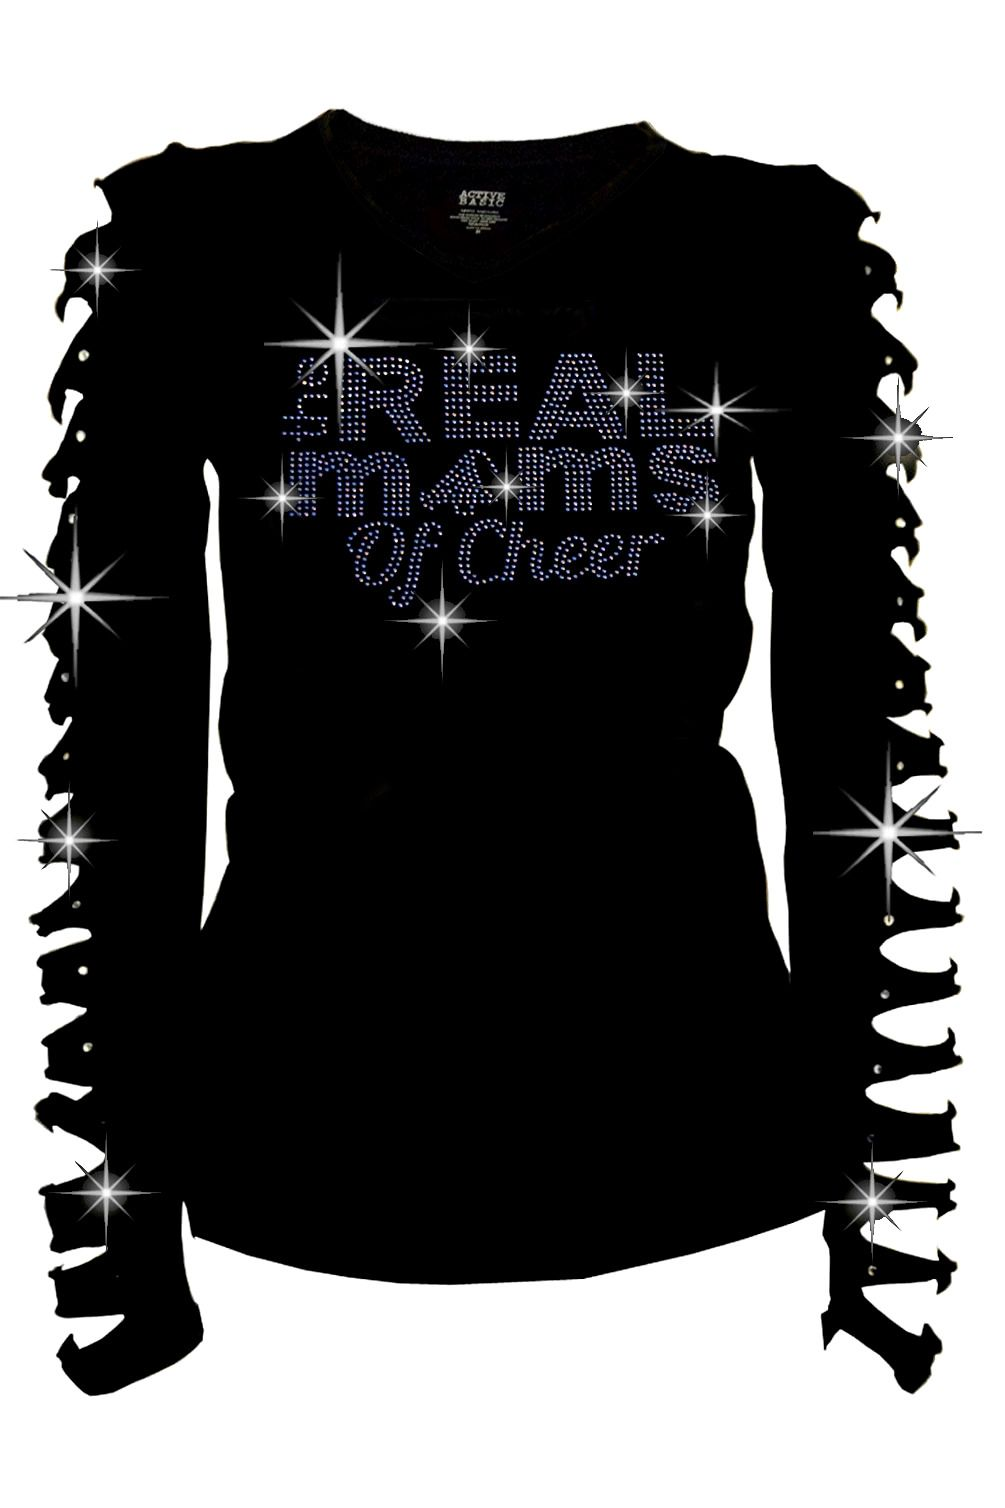 060026076 Details about Cheer Mom Shirt The Real Moms of Cheer BLING BLING ...